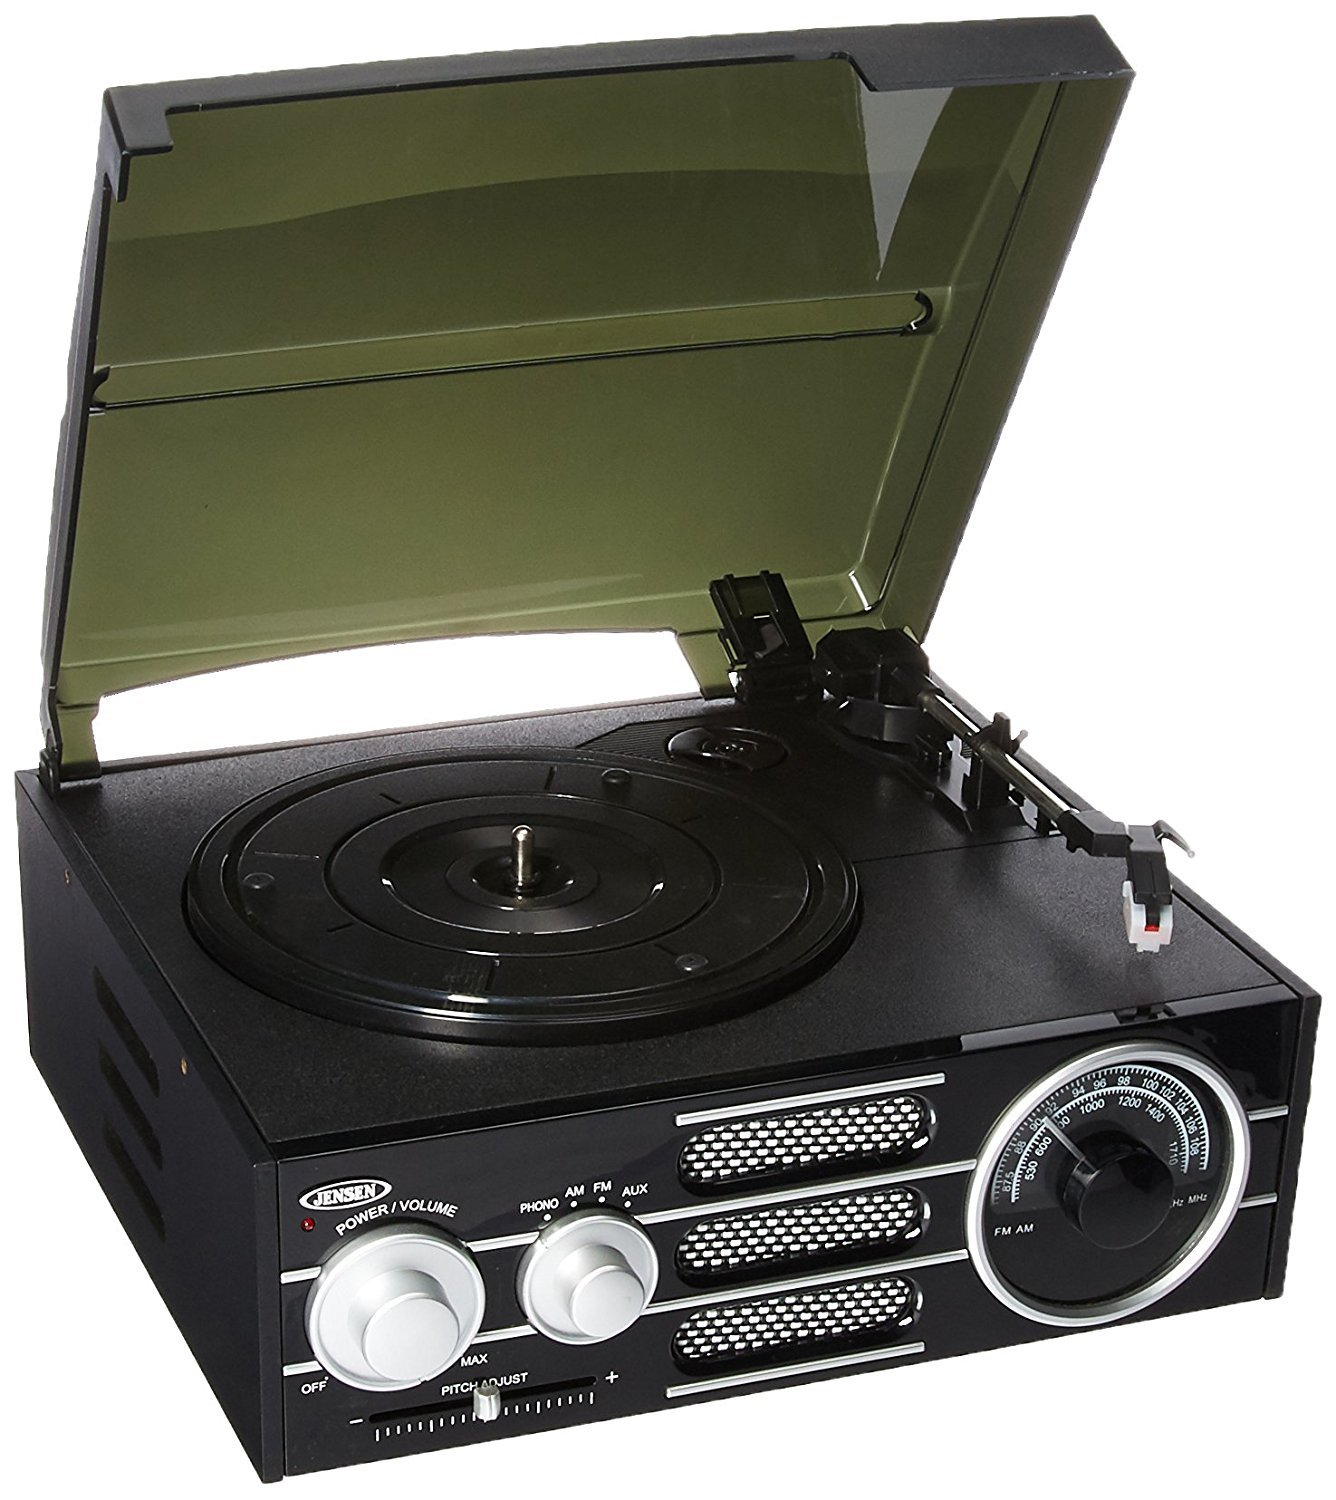 Digital Turntable, Black Jensen 3-speed Record Player Usb Stereo Turntable